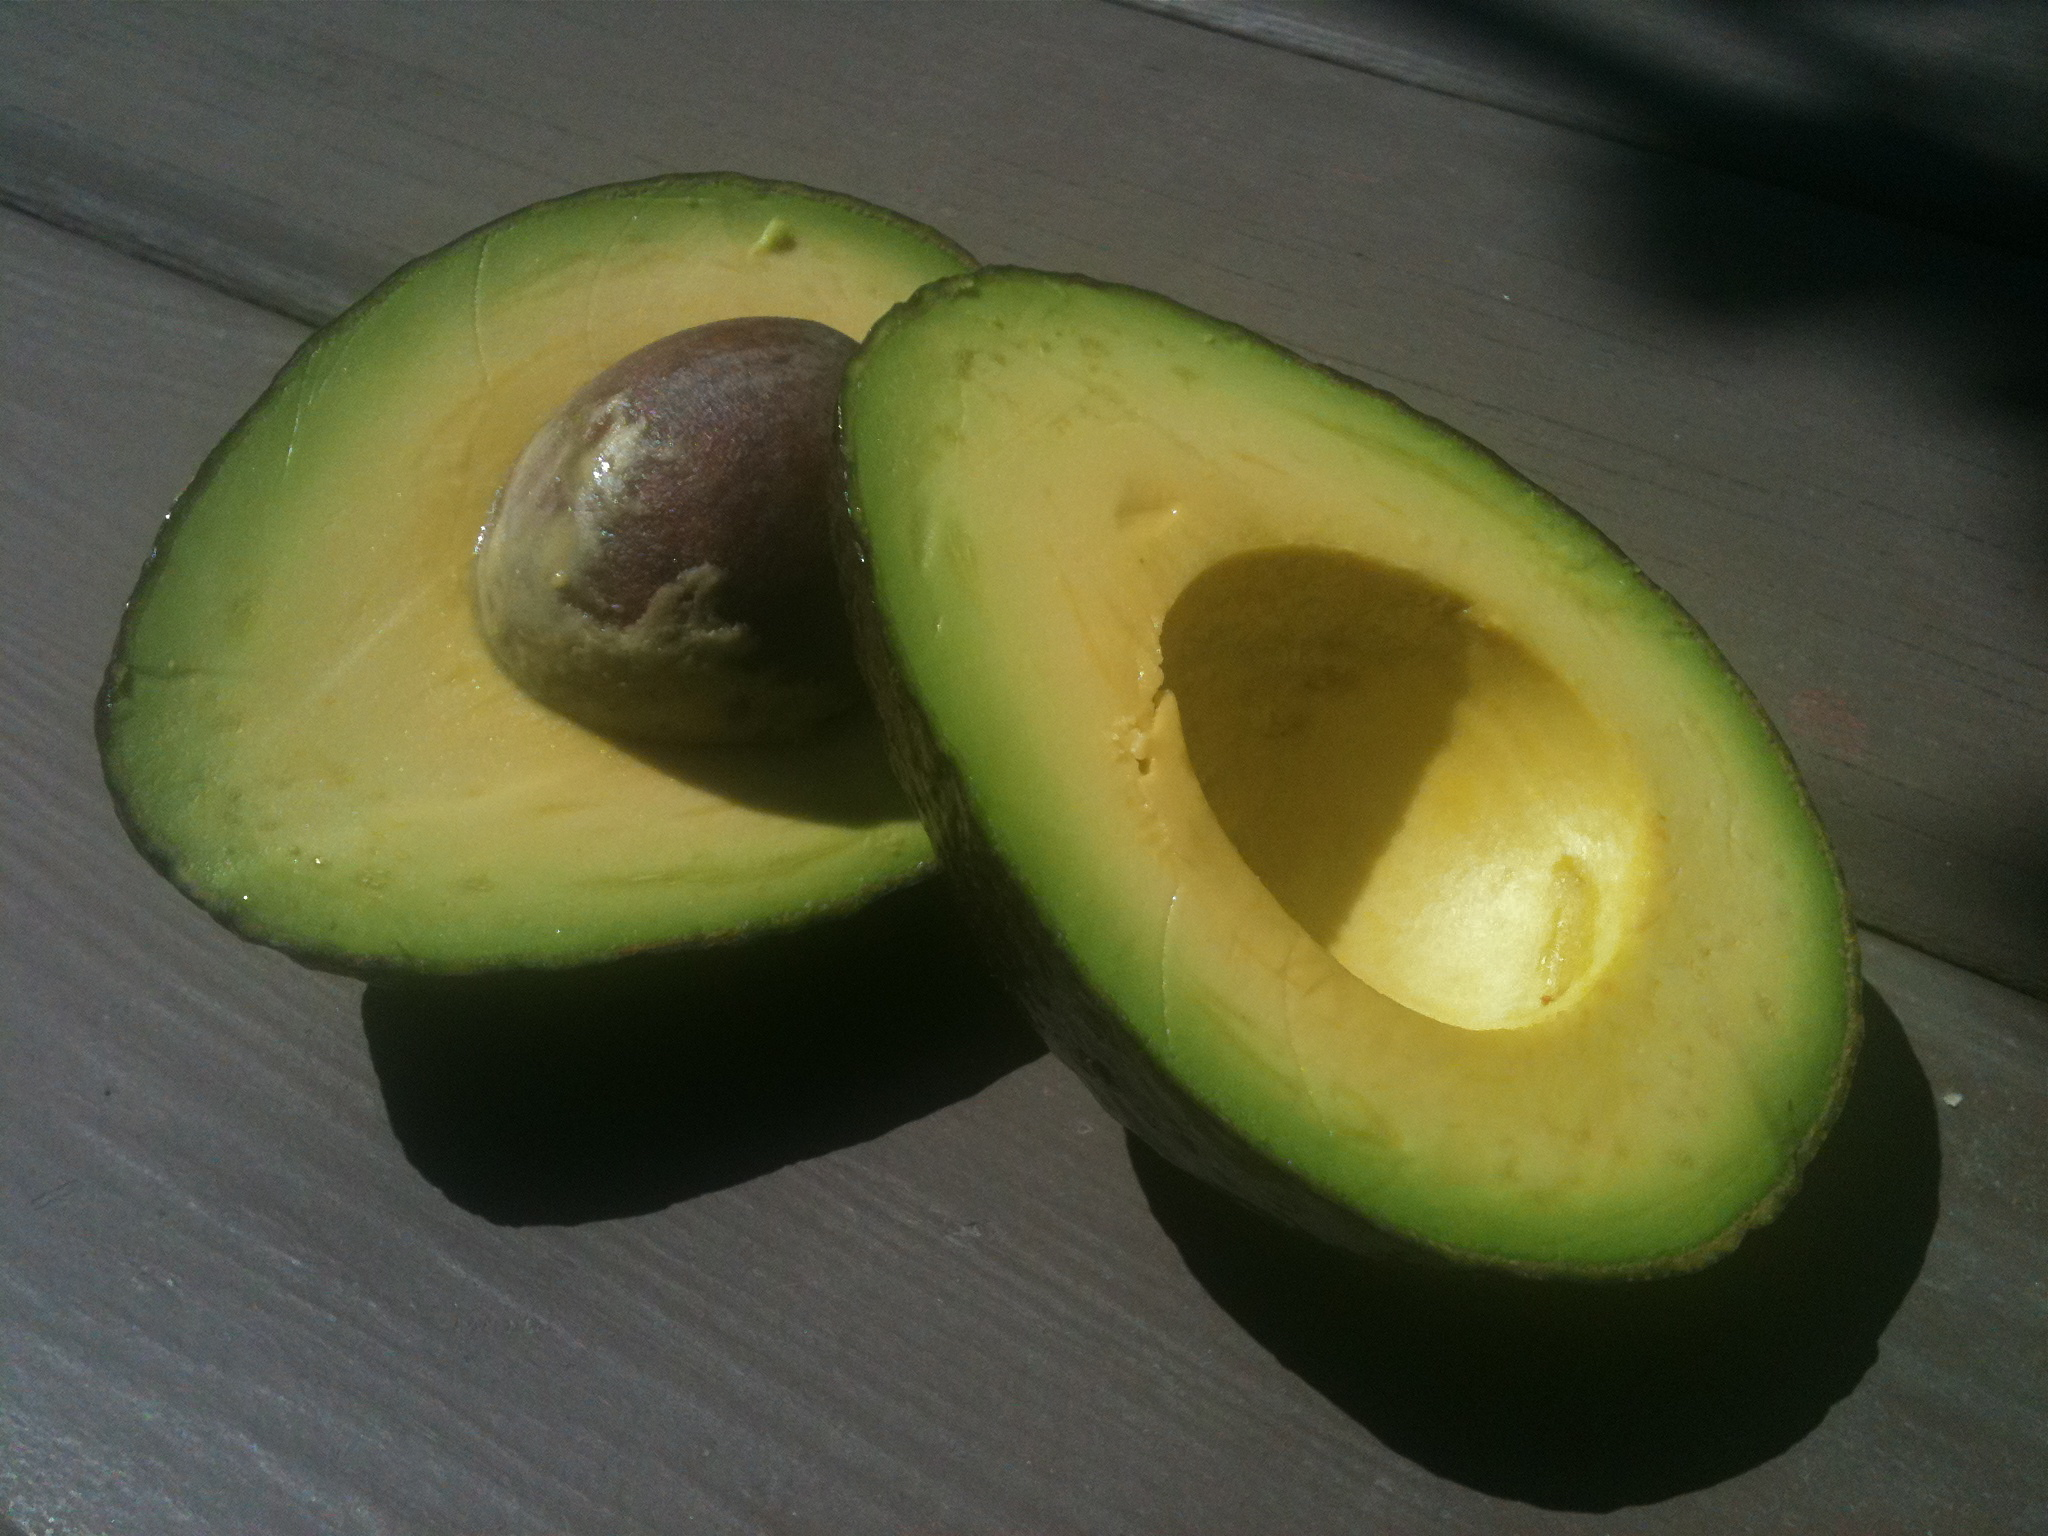 Avocados: 10 things you need to know before eating your next avocado